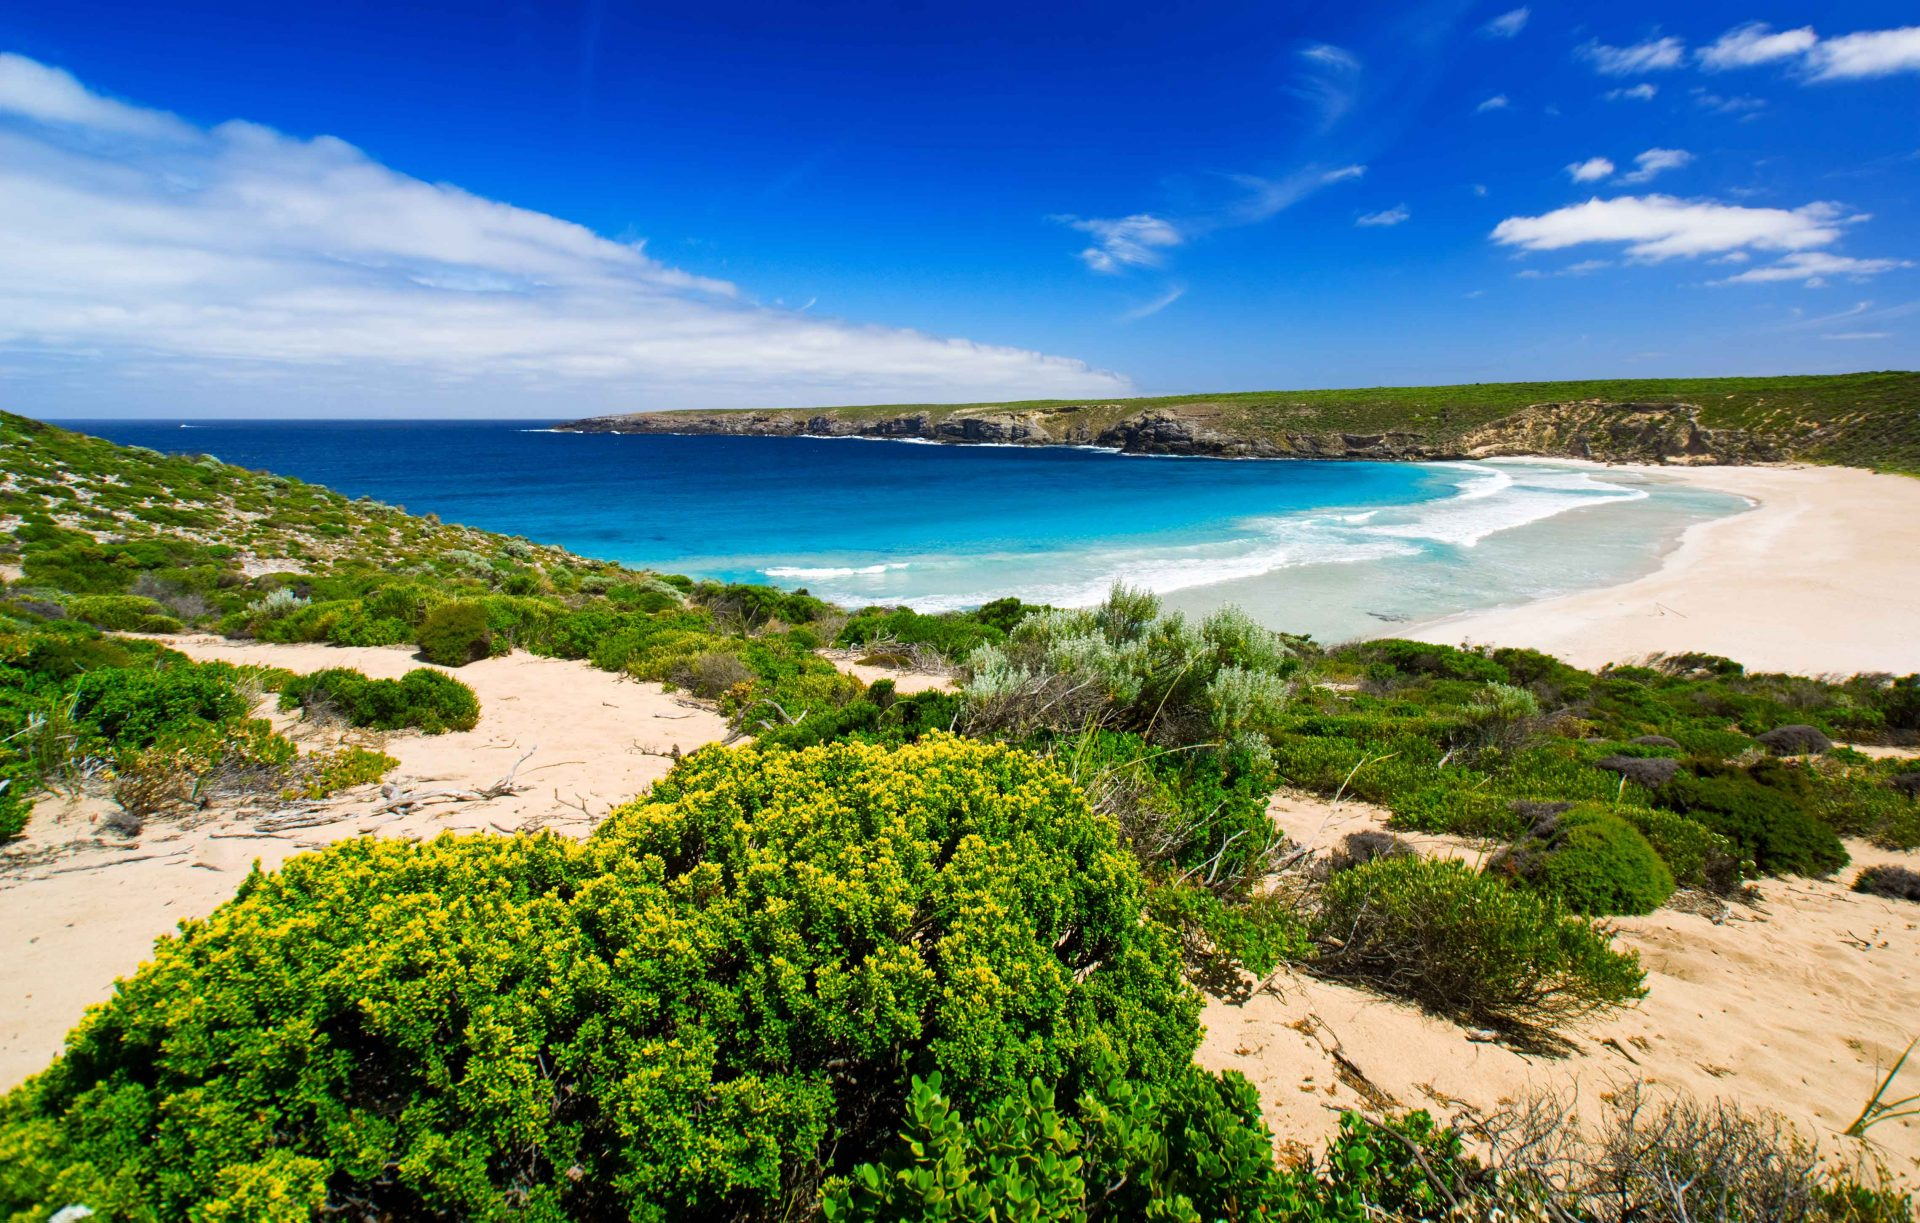 Travel to Australia - Kangaroo Island